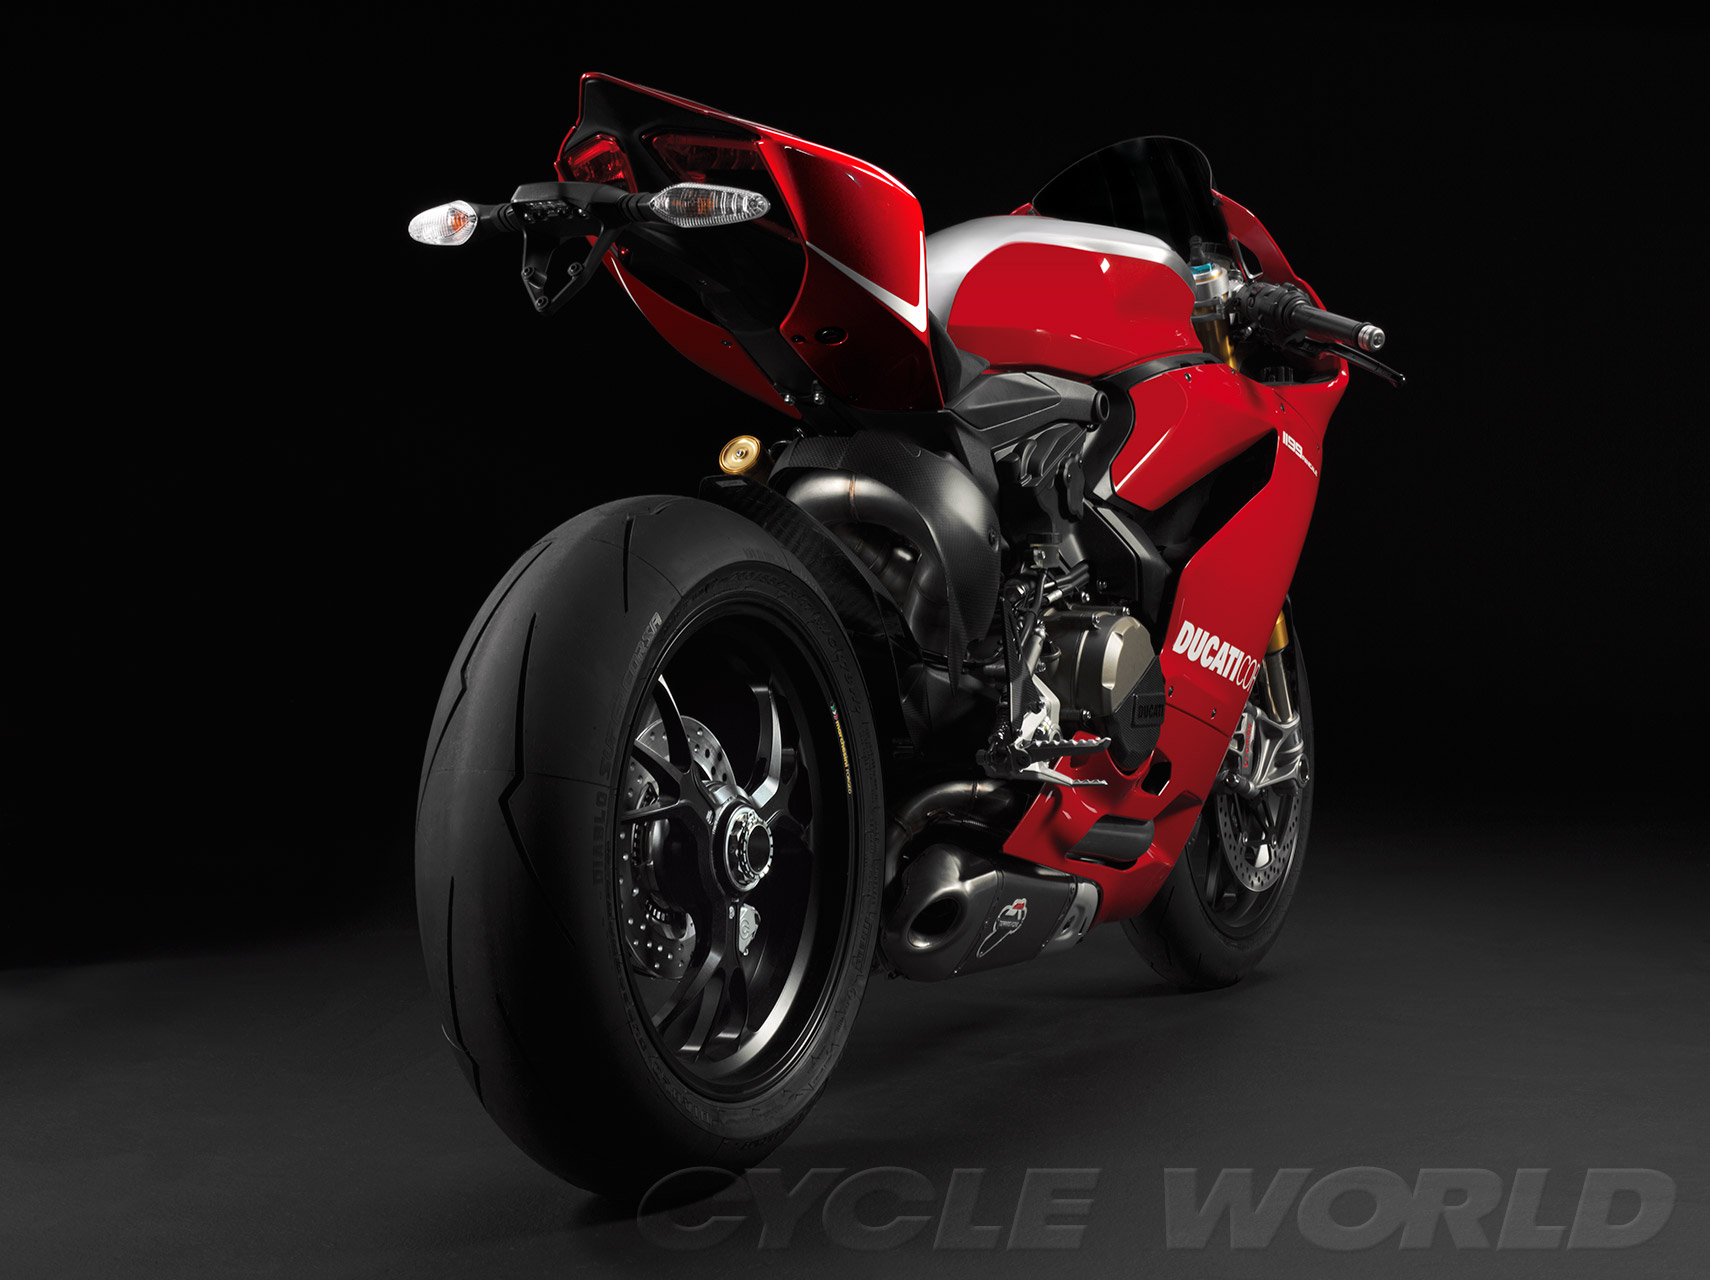 ducati hd wallpaper - sf wallpaper